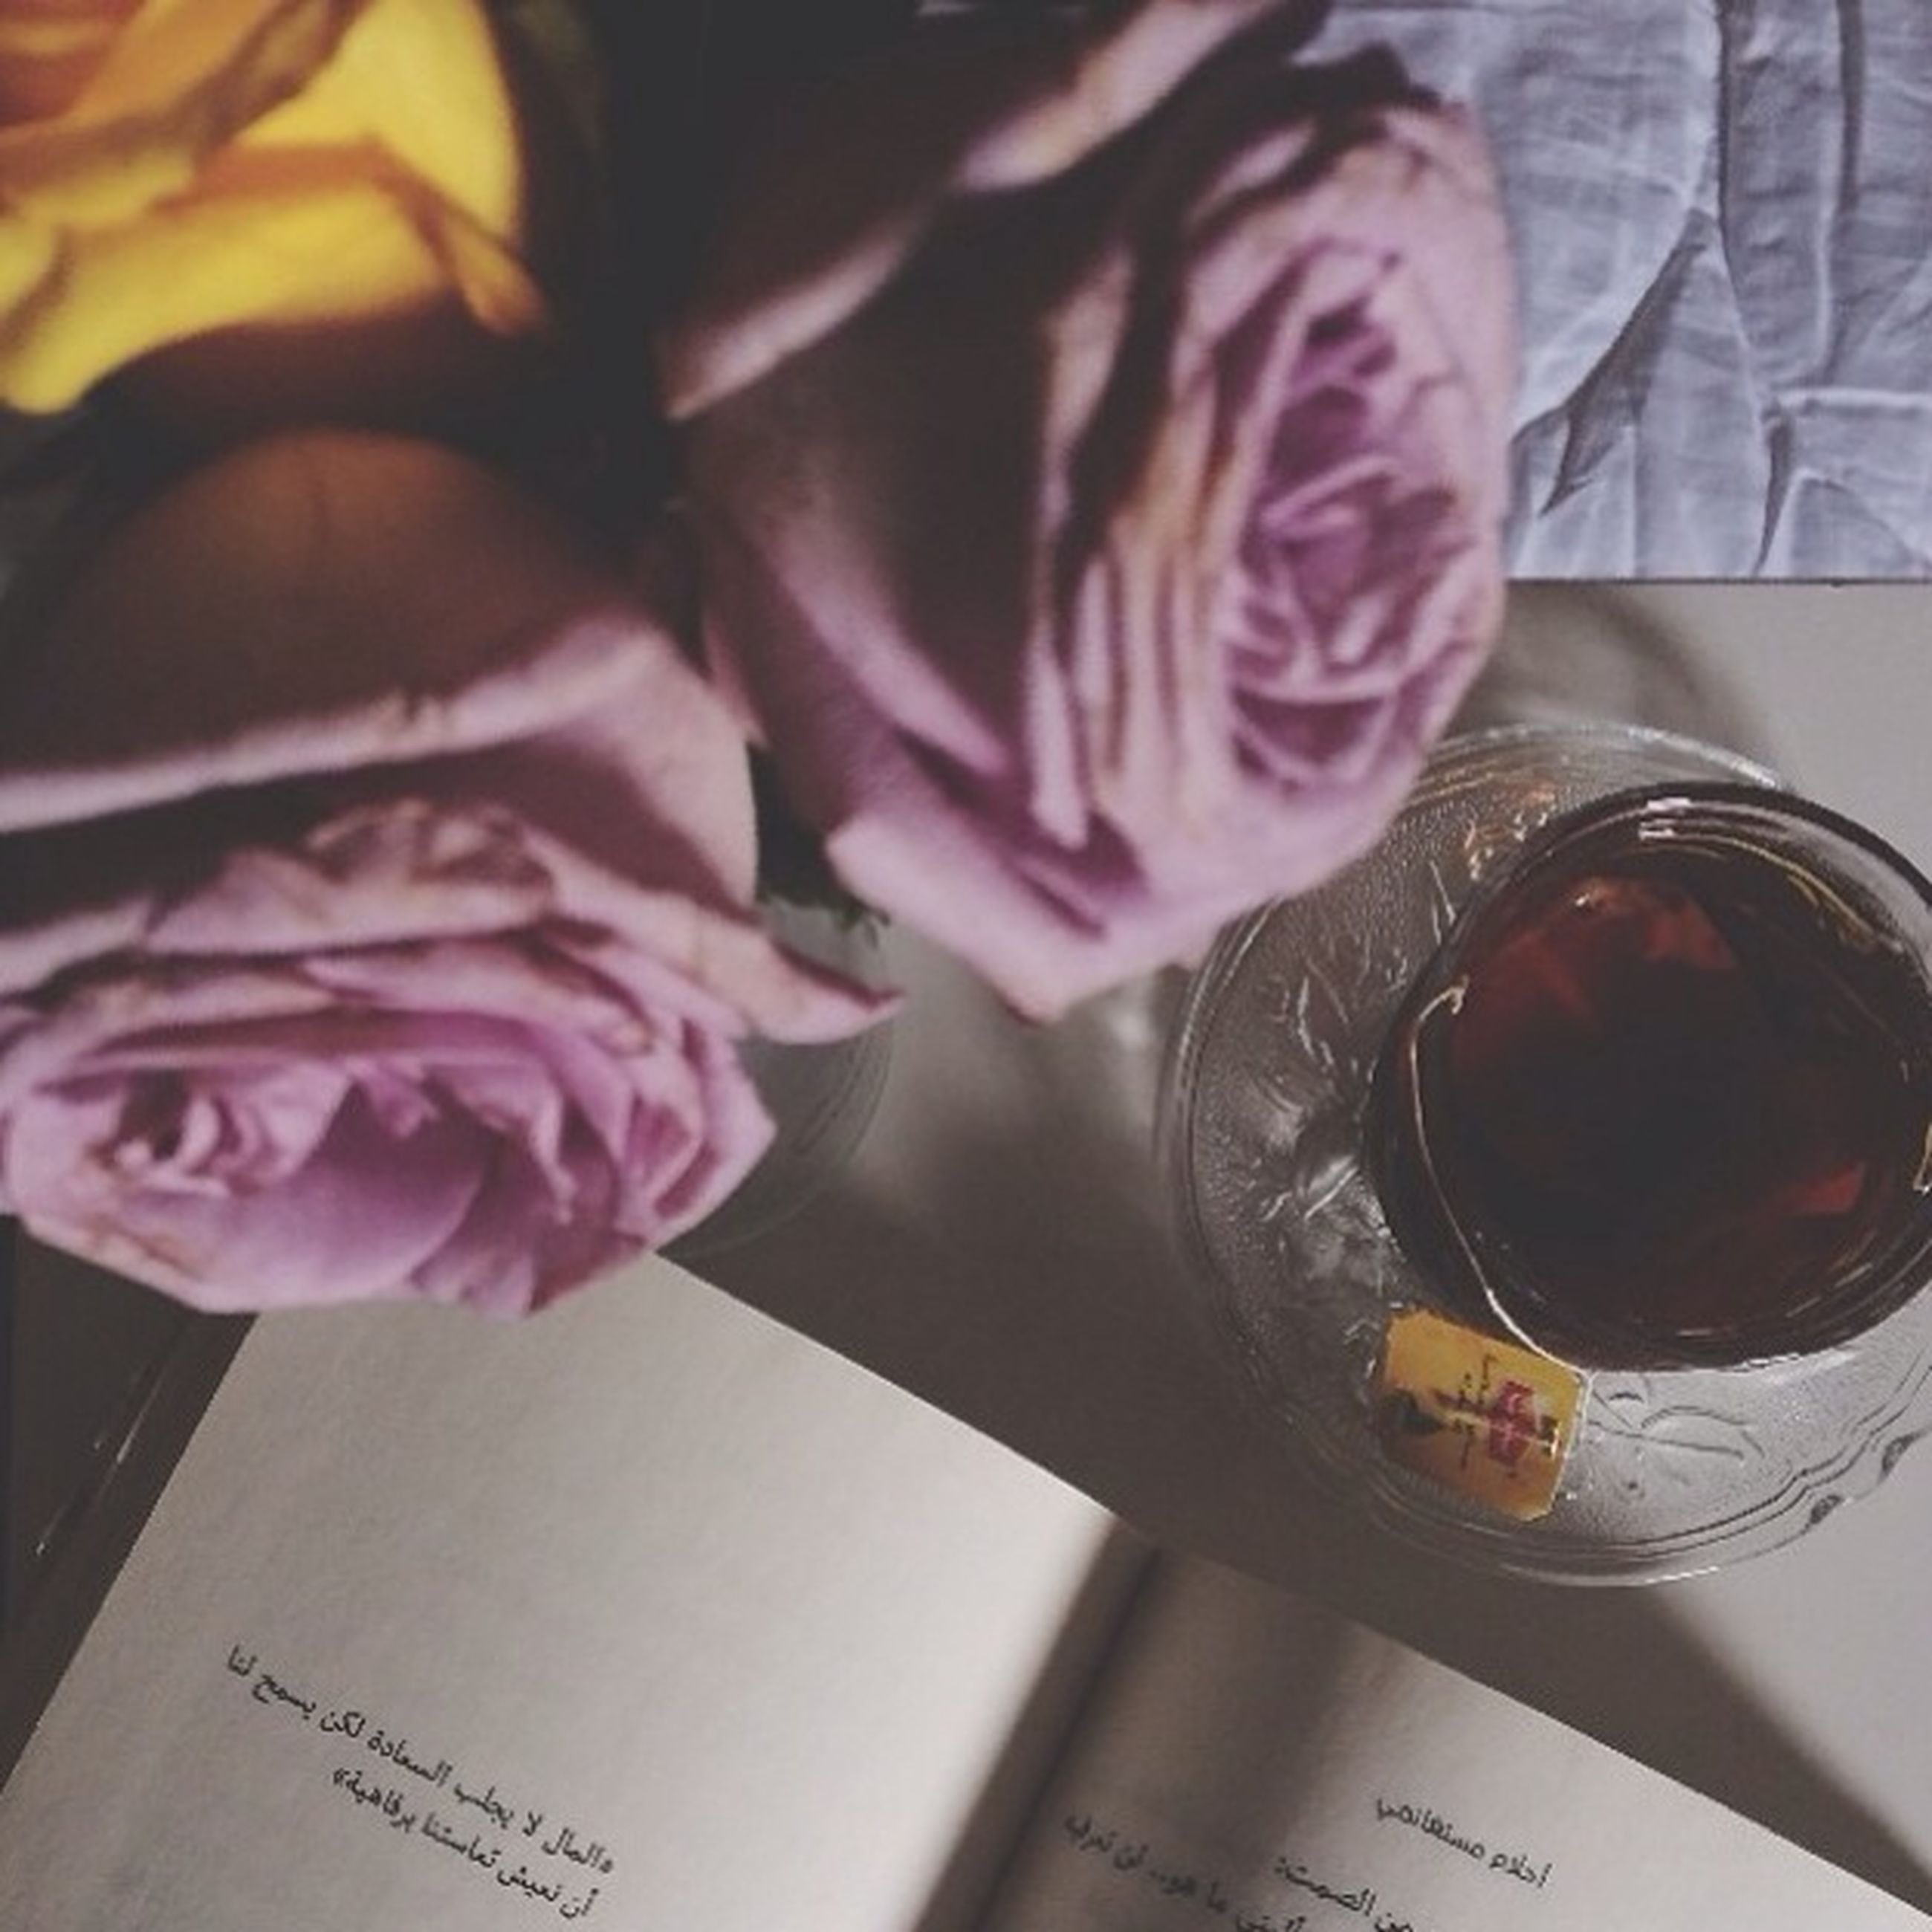 indoors, table, drink, food and drink, refreshment, close-up, freshness, still life, drinking glass, holding, high angle view, home interior, person, book, glass - material, lifestyles, communication, paper